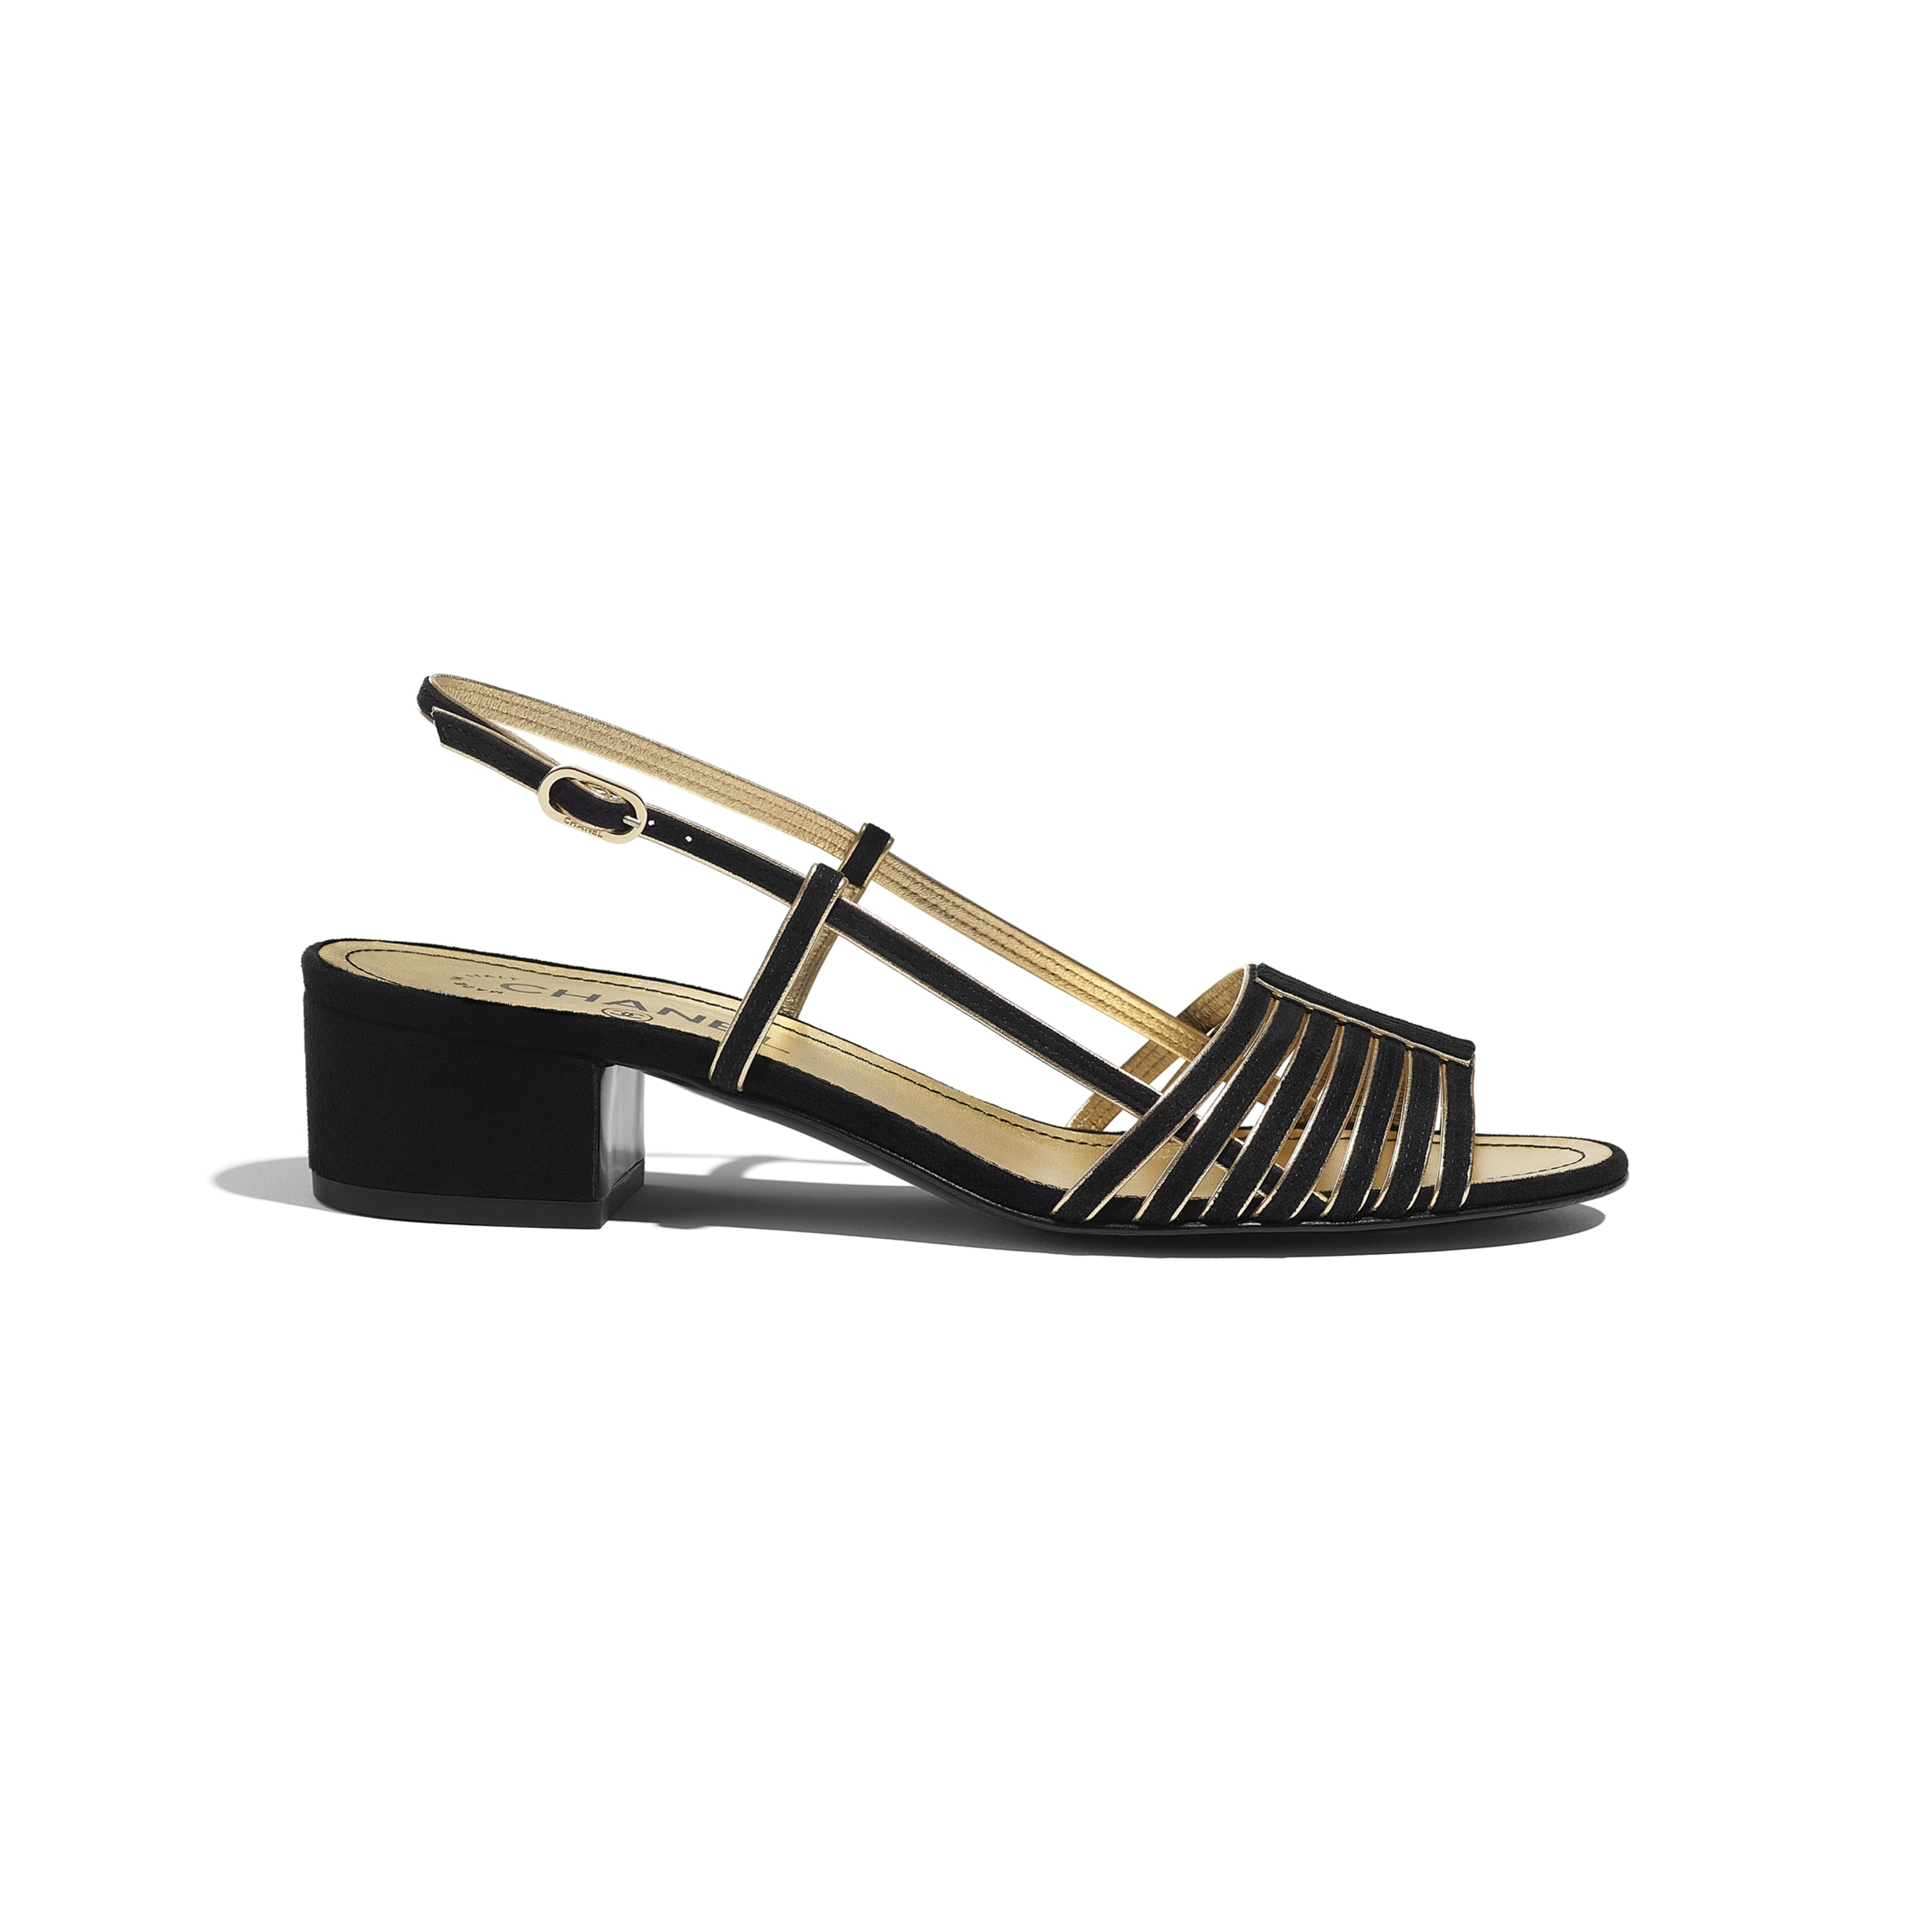 Sandals - Black & Gold - Suede Kidskin - CHANEL - Default view - see standard sized version